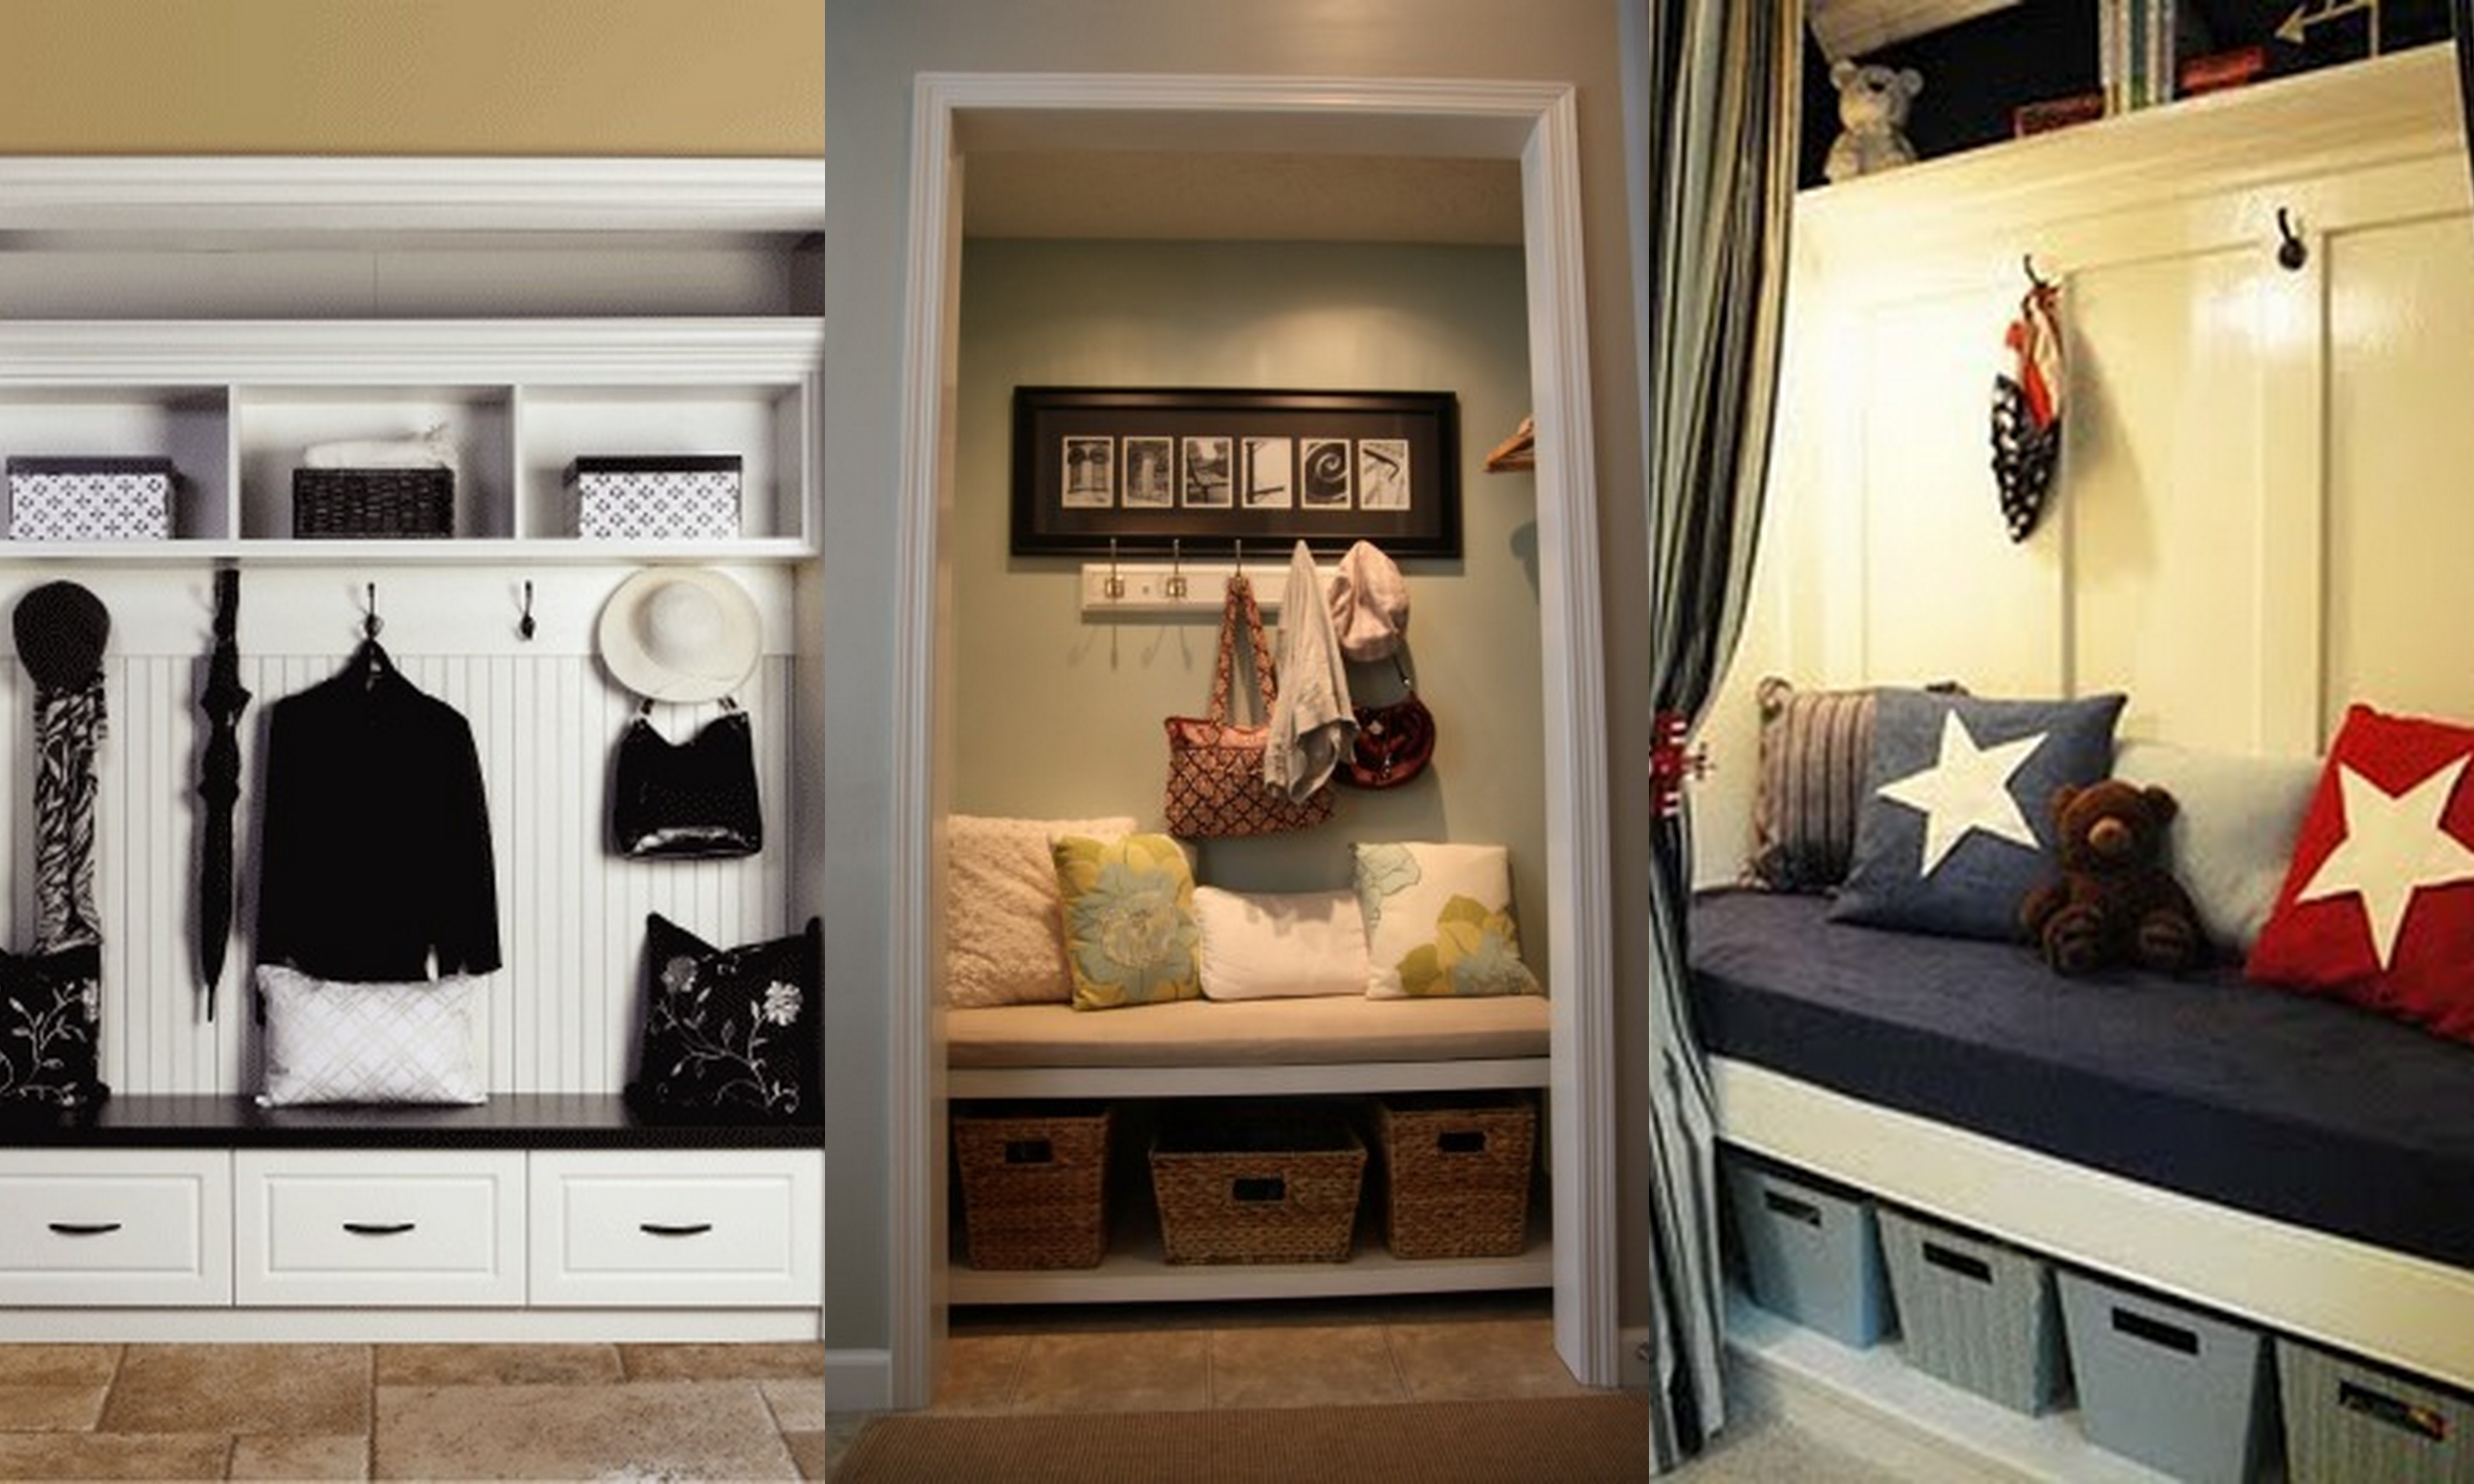 301 moved permanently Front entry bench ideas